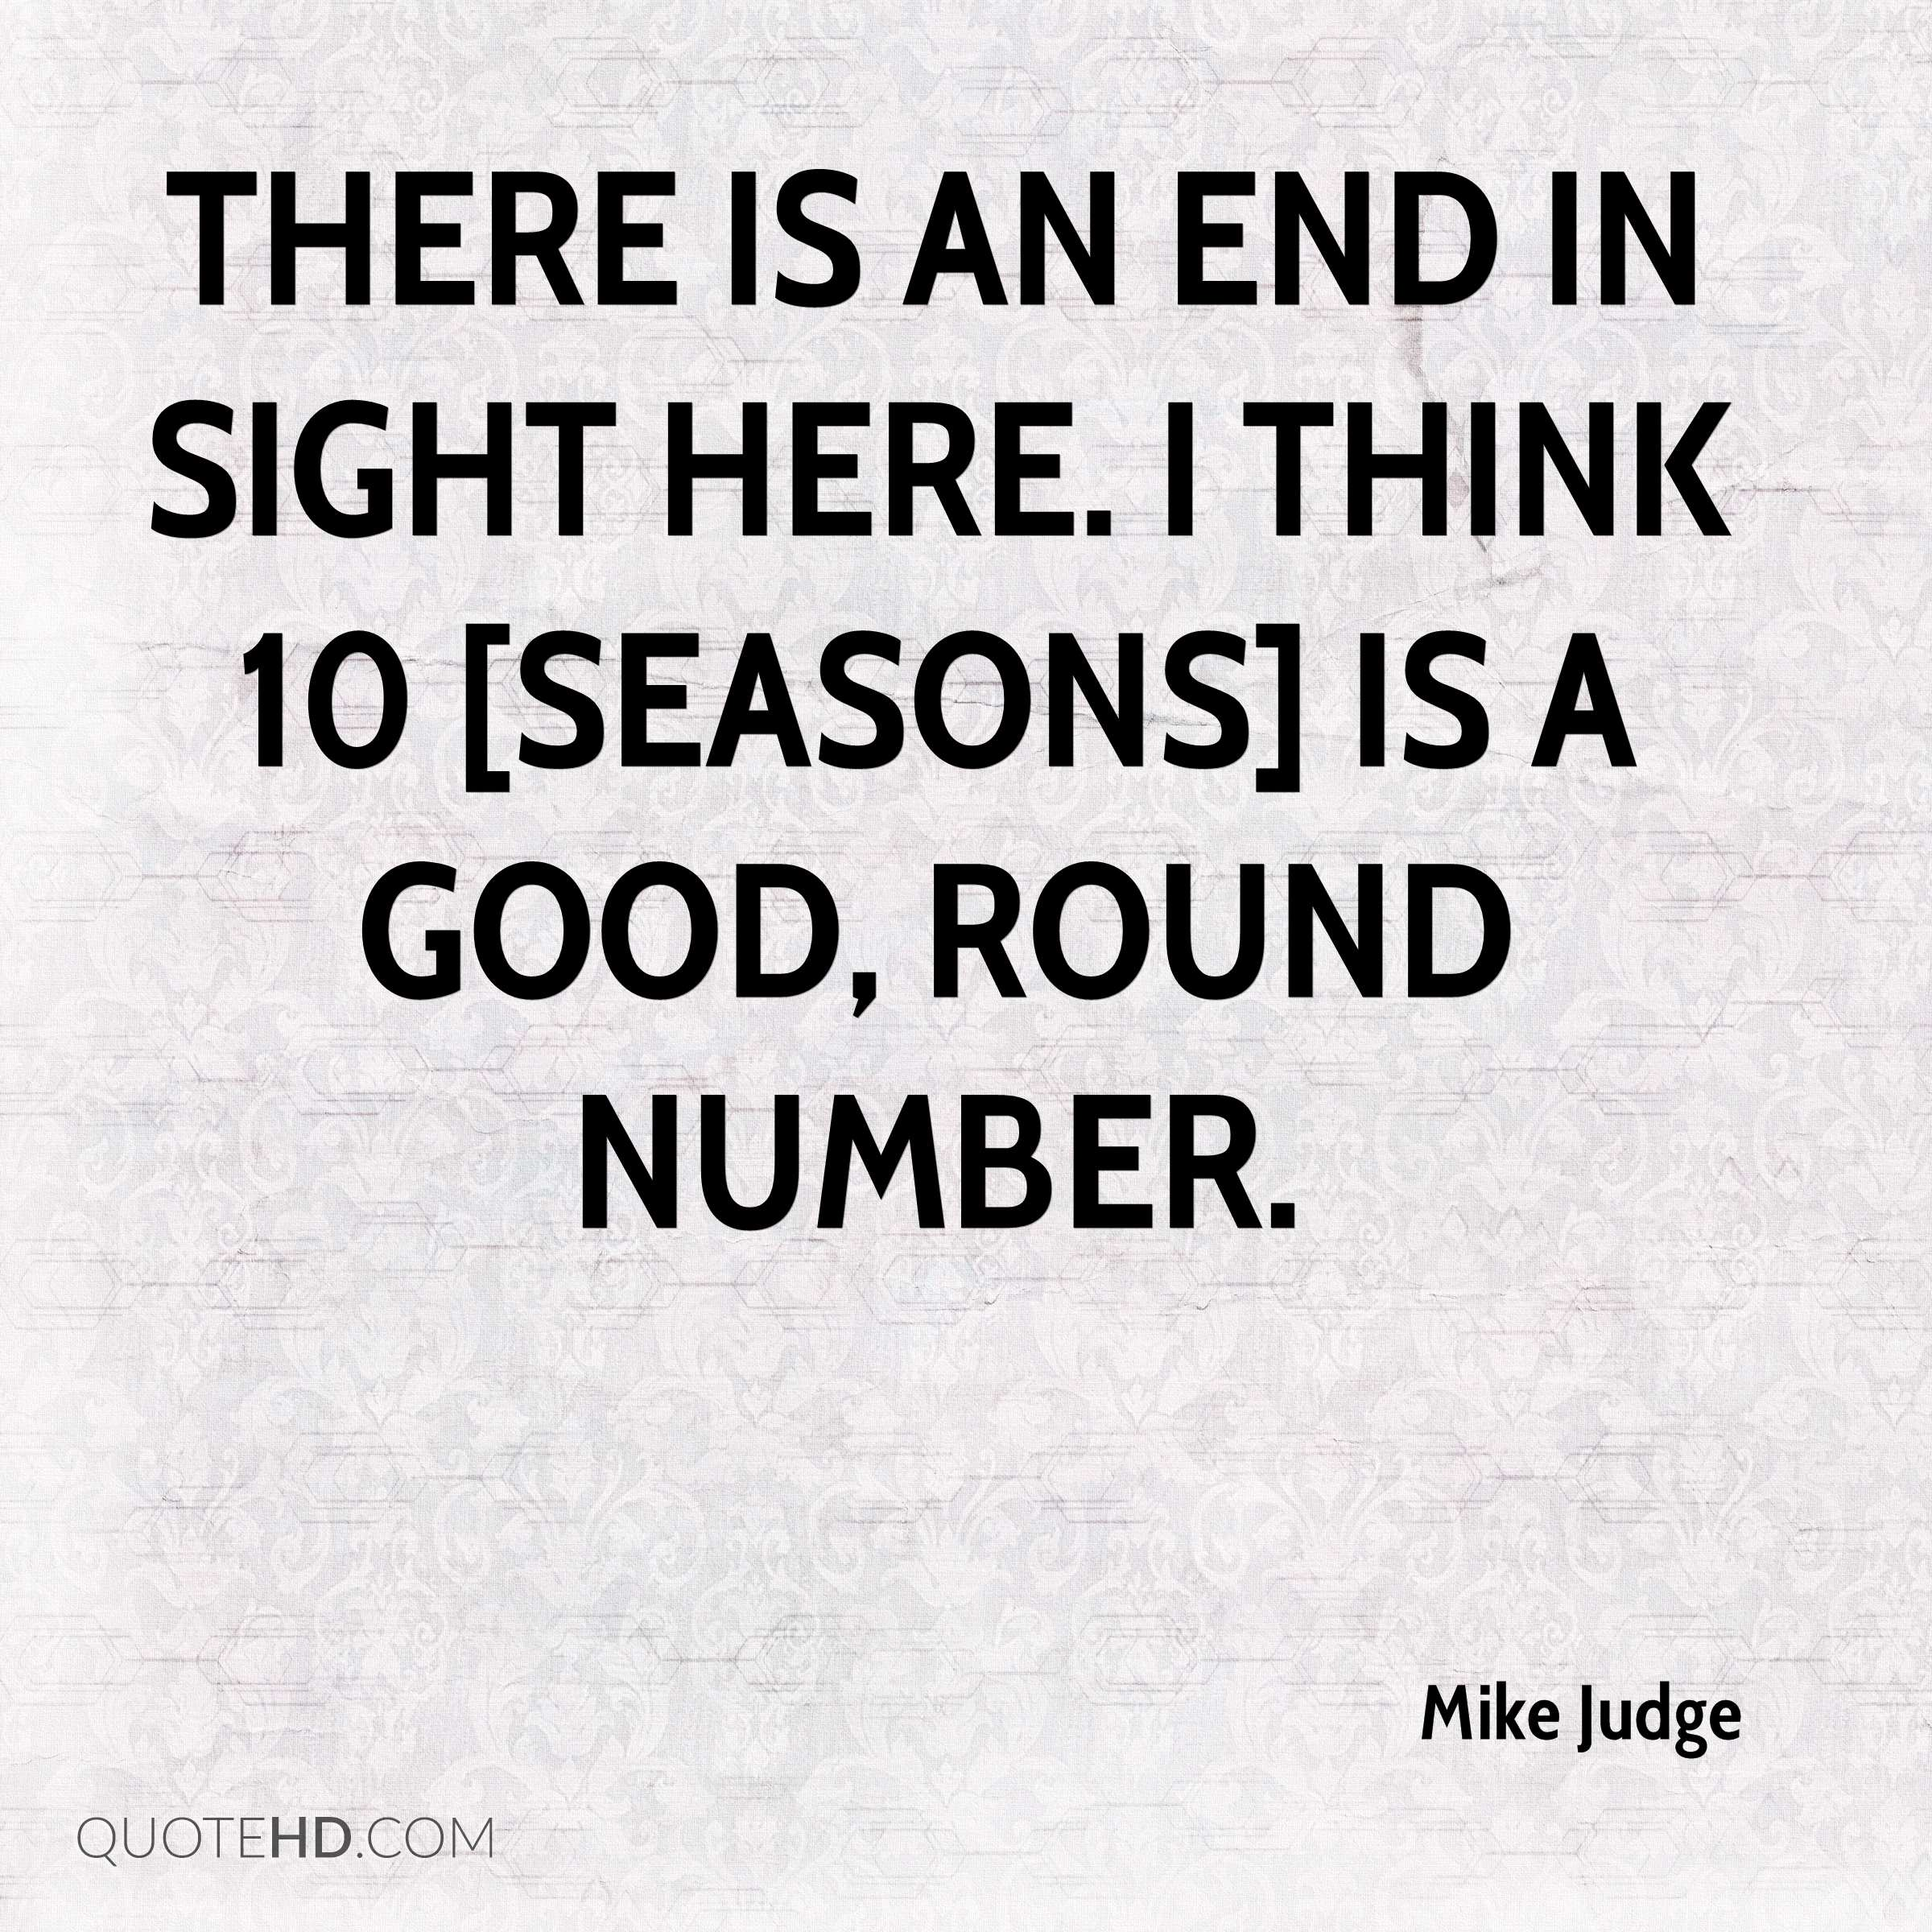 There is an end in sight here. I think 10 [seasons] is a good, round number.